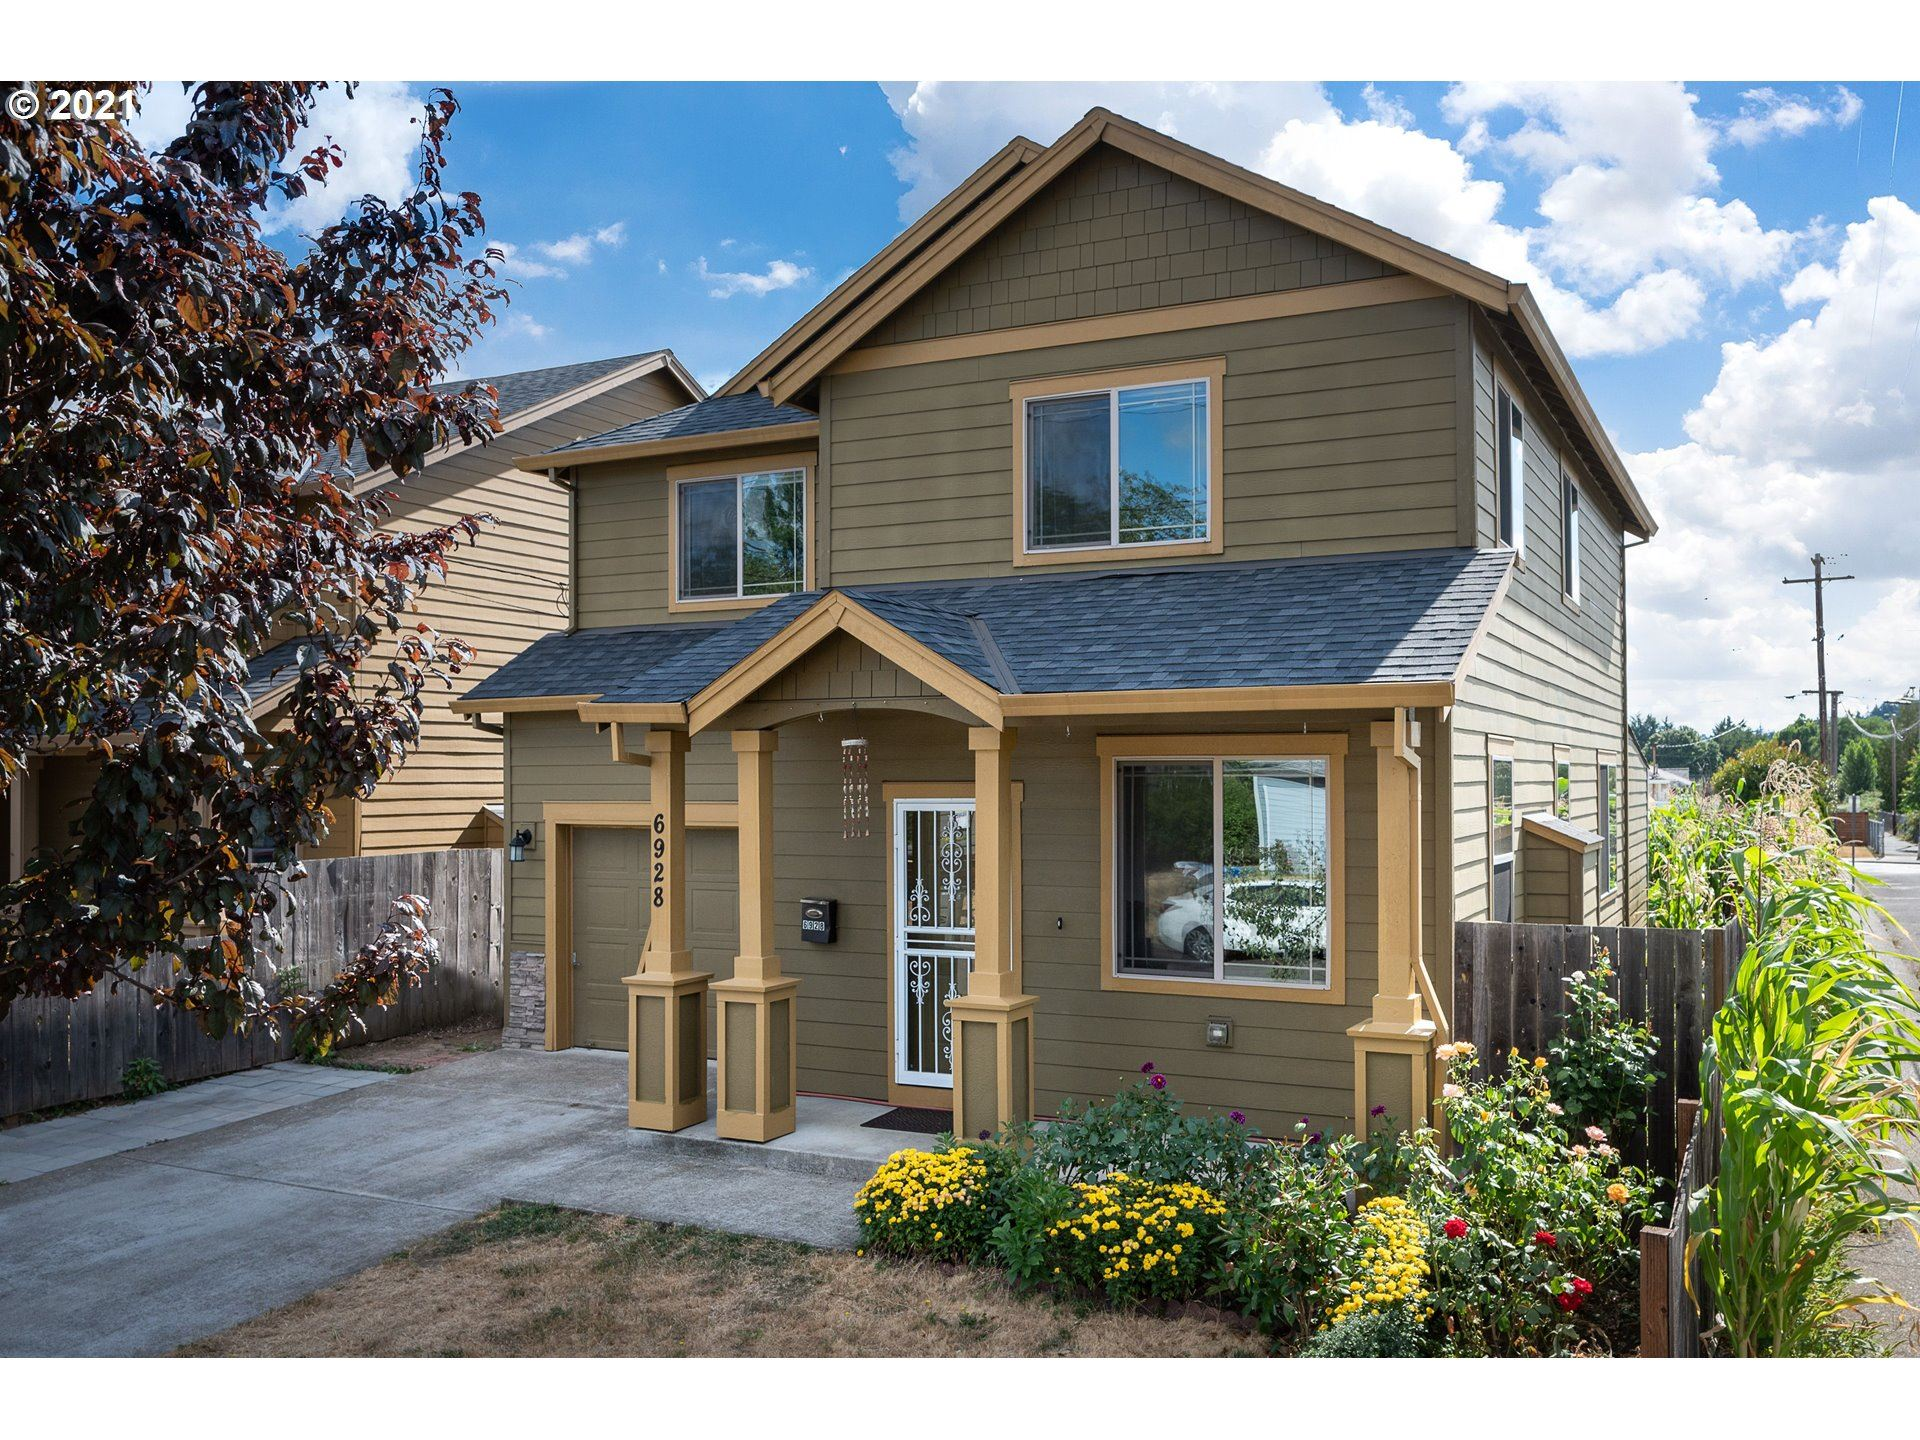 6928 SE 86TH AVE, Portland, OR 97266 - MLS#: 21089585